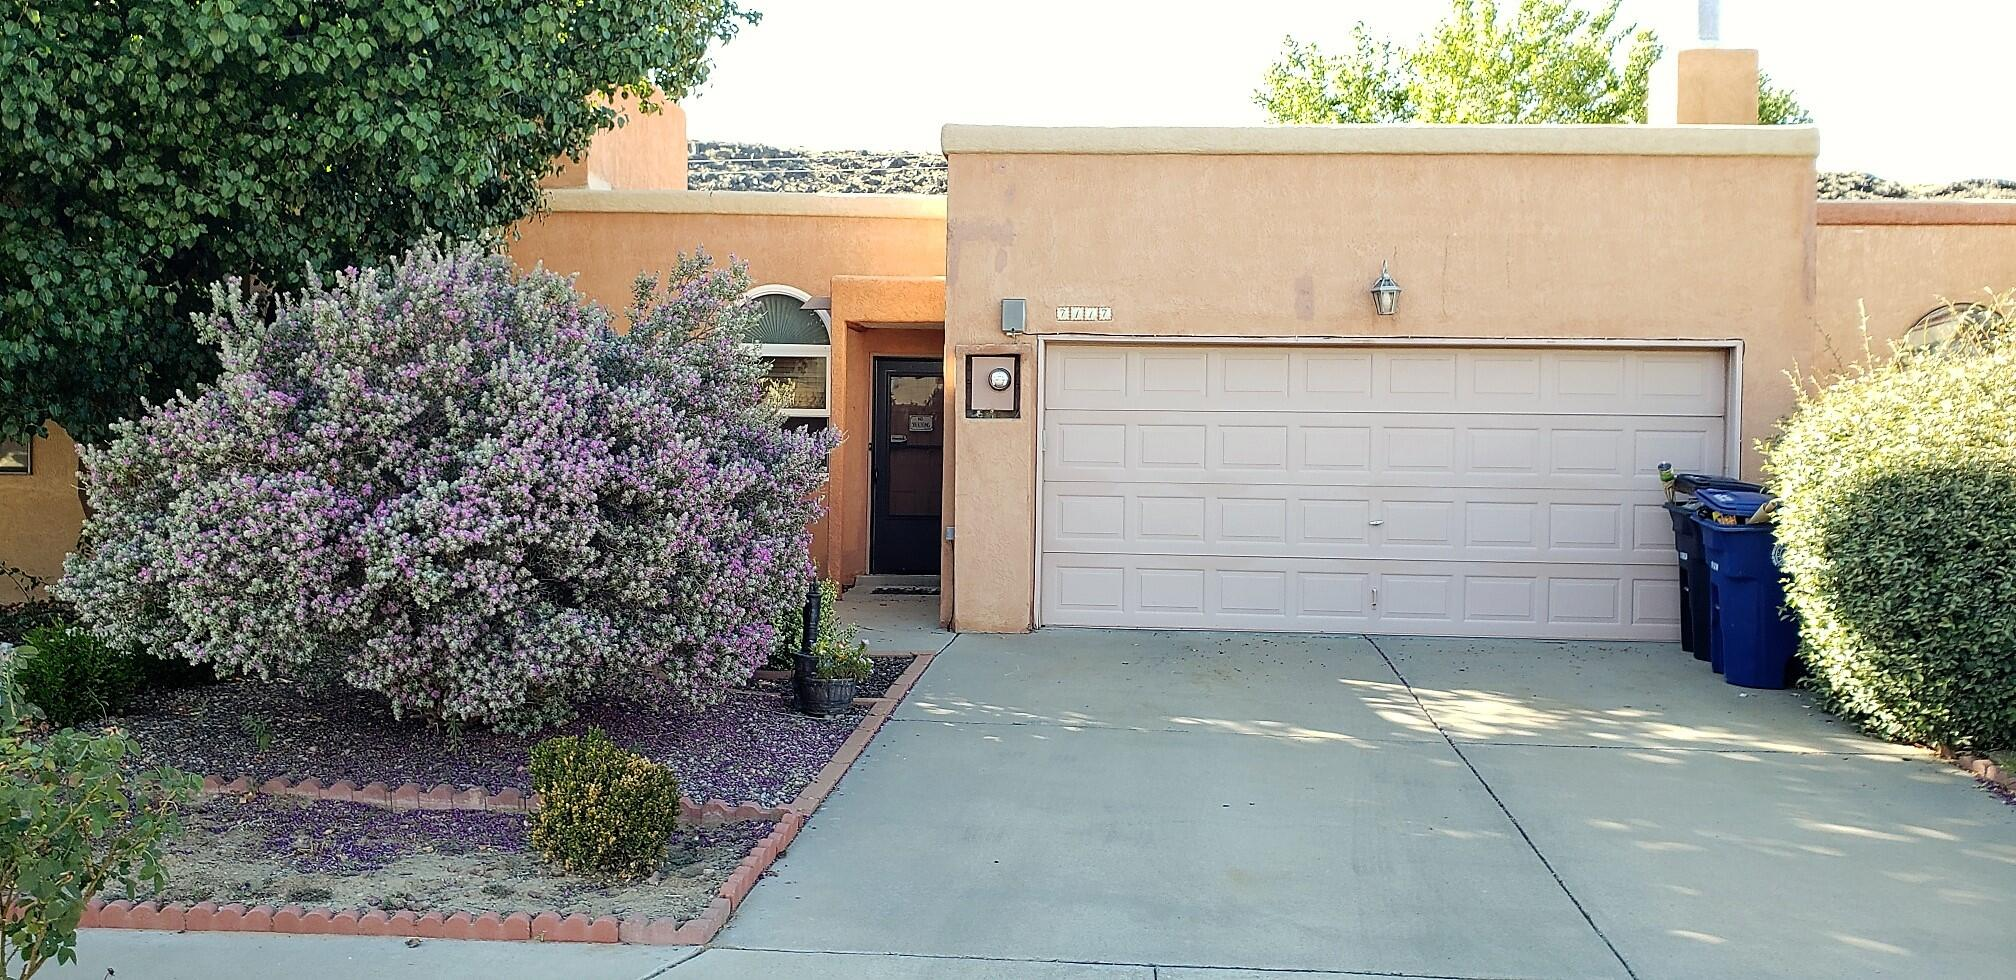 Multiple Offers received. Wonderful Town Home with open Floor Plan!This nice home offers vaulted ceilings, a large great room with open dining area and nice granite counter tops with custom tile backsplash in Kitchen as well as a Private Patio. Low maintenance back yard and large two car Garage. Water lines in home have been replaced.